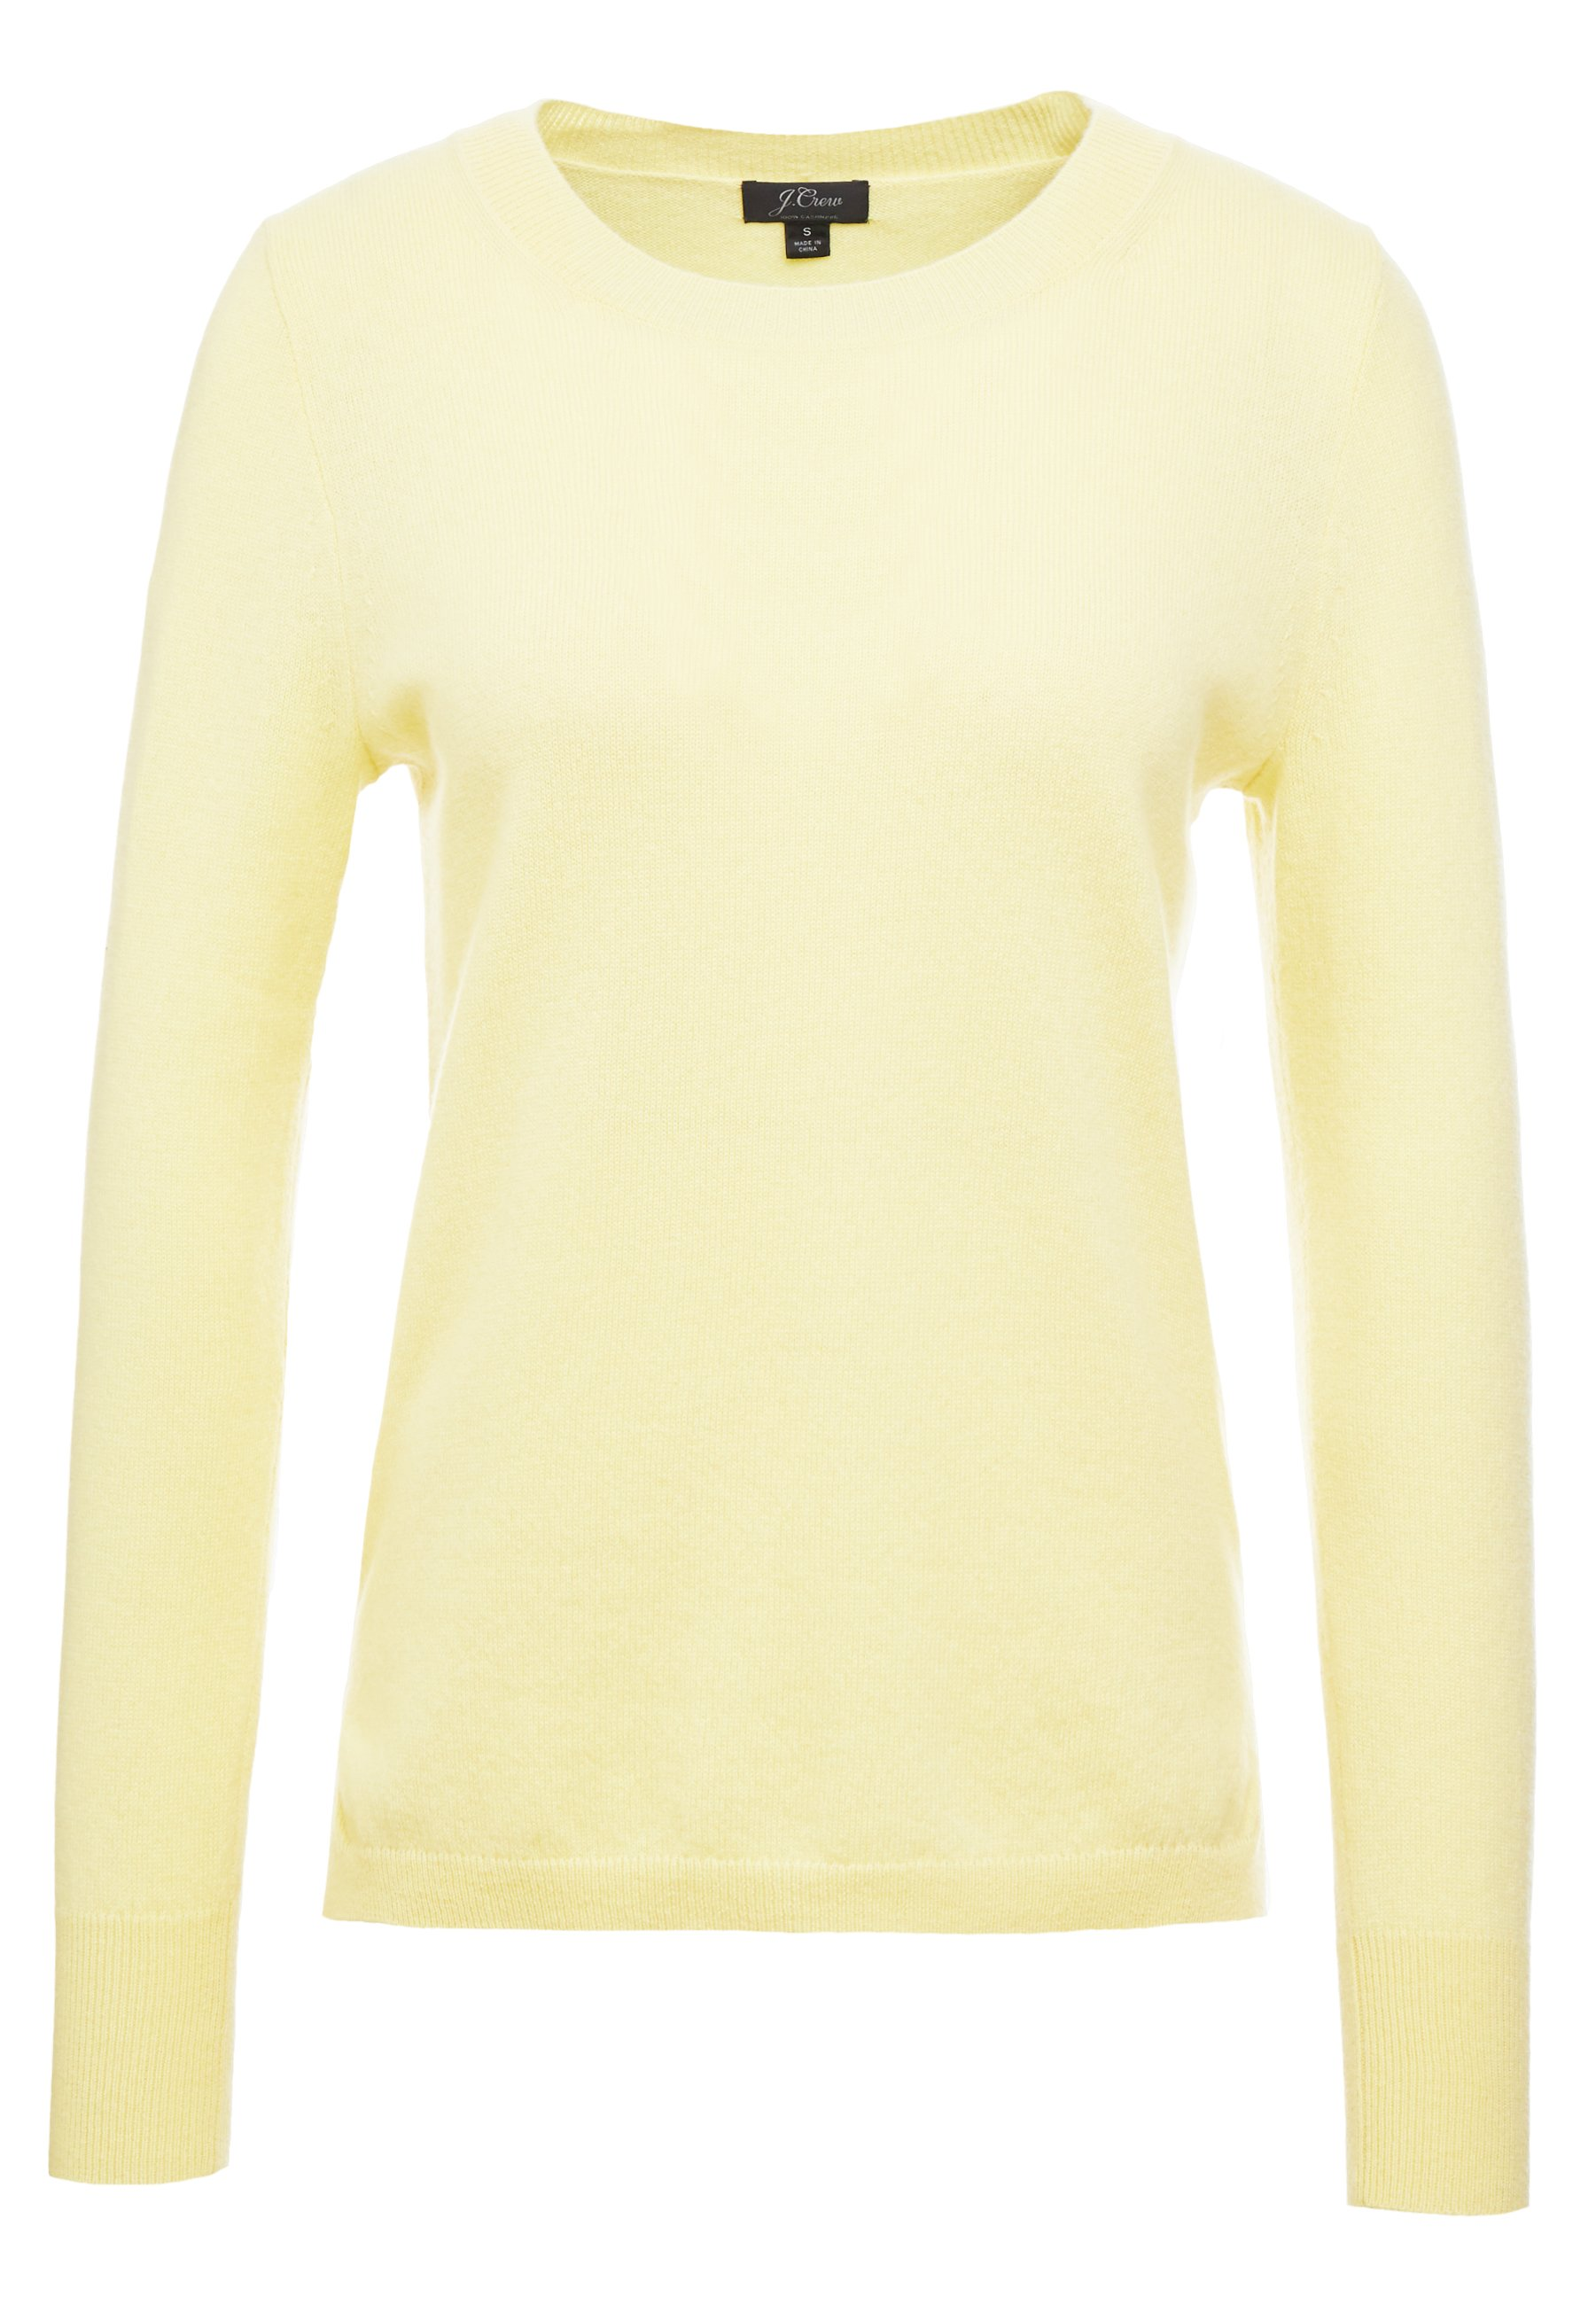 J.crew Layla Crew - Strickpullover Neon Flame Black Friday